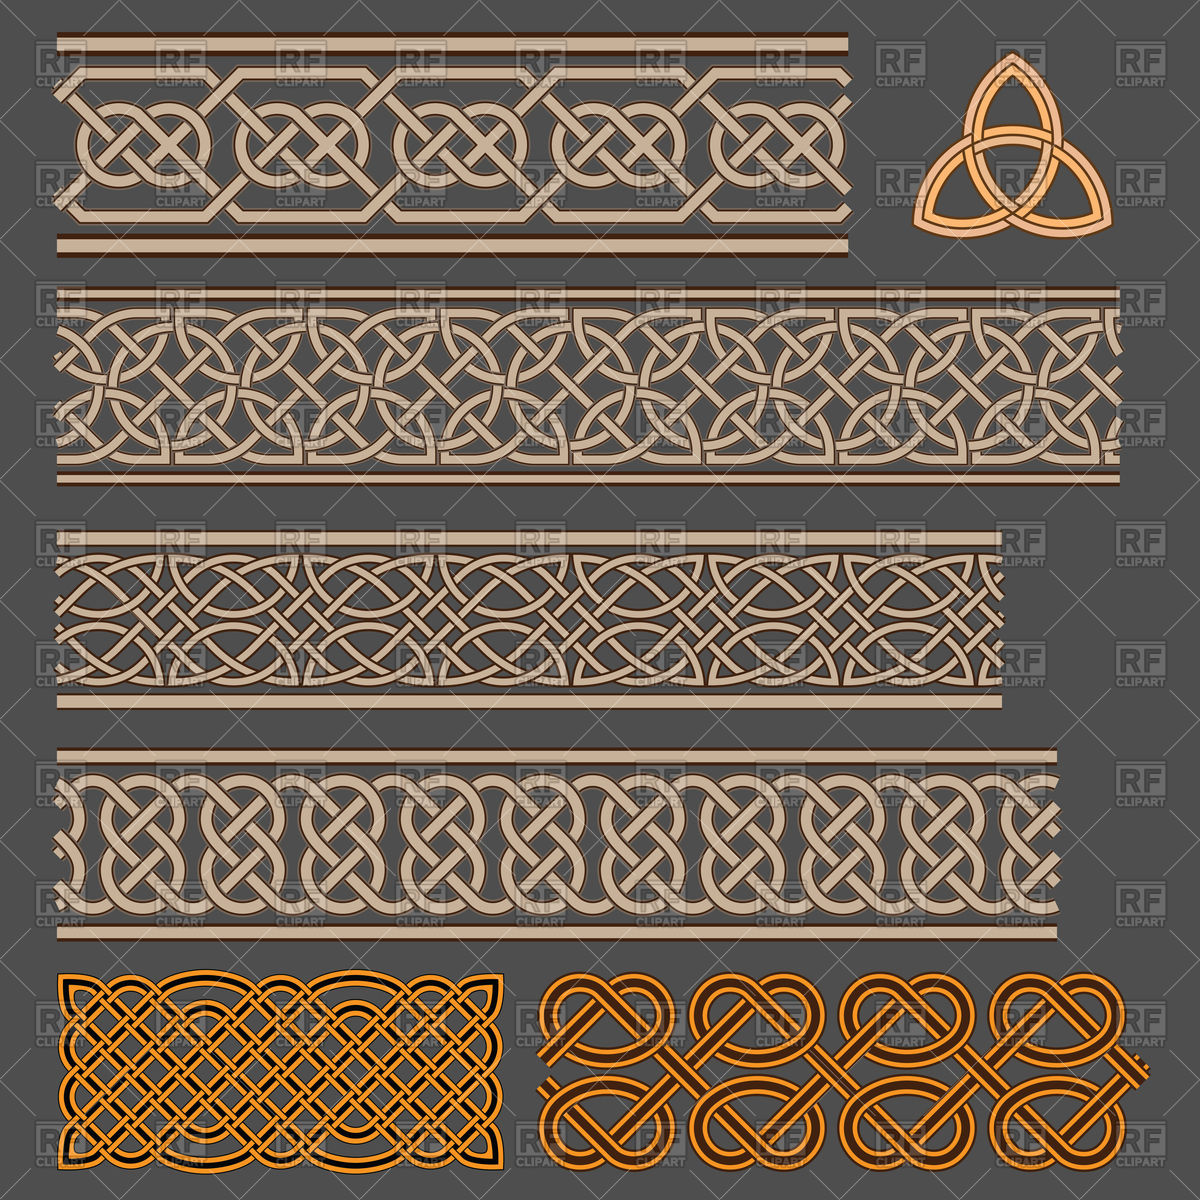 1200x1200 Celtic Knot Borders Vector Image Vector Artwork Of Borders And